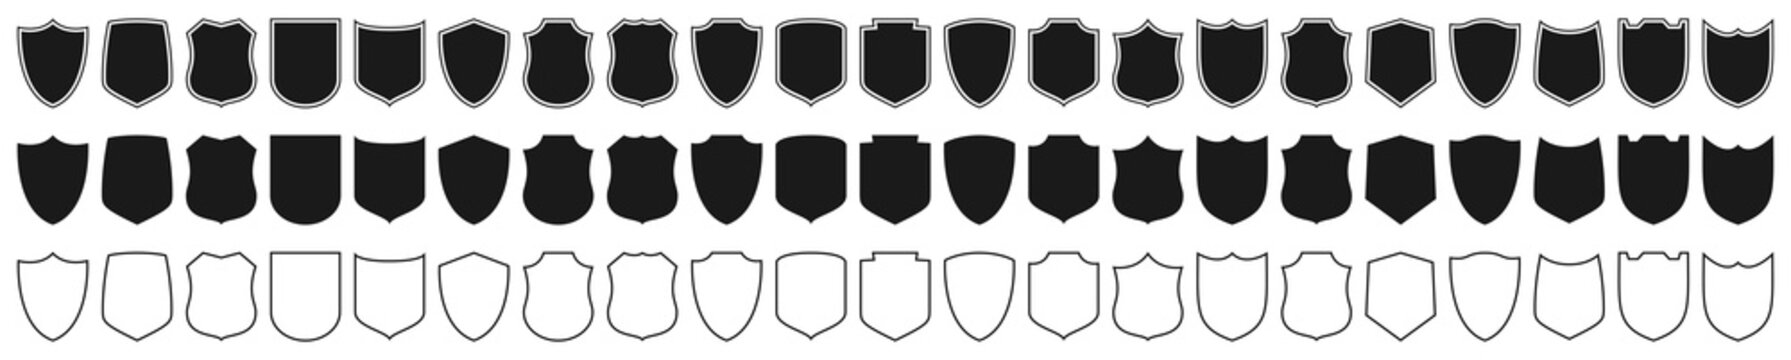 Shields set. Collection of security shield icons with contours and linear signs. Design elements for concept of safety and protection. Vector illustration.